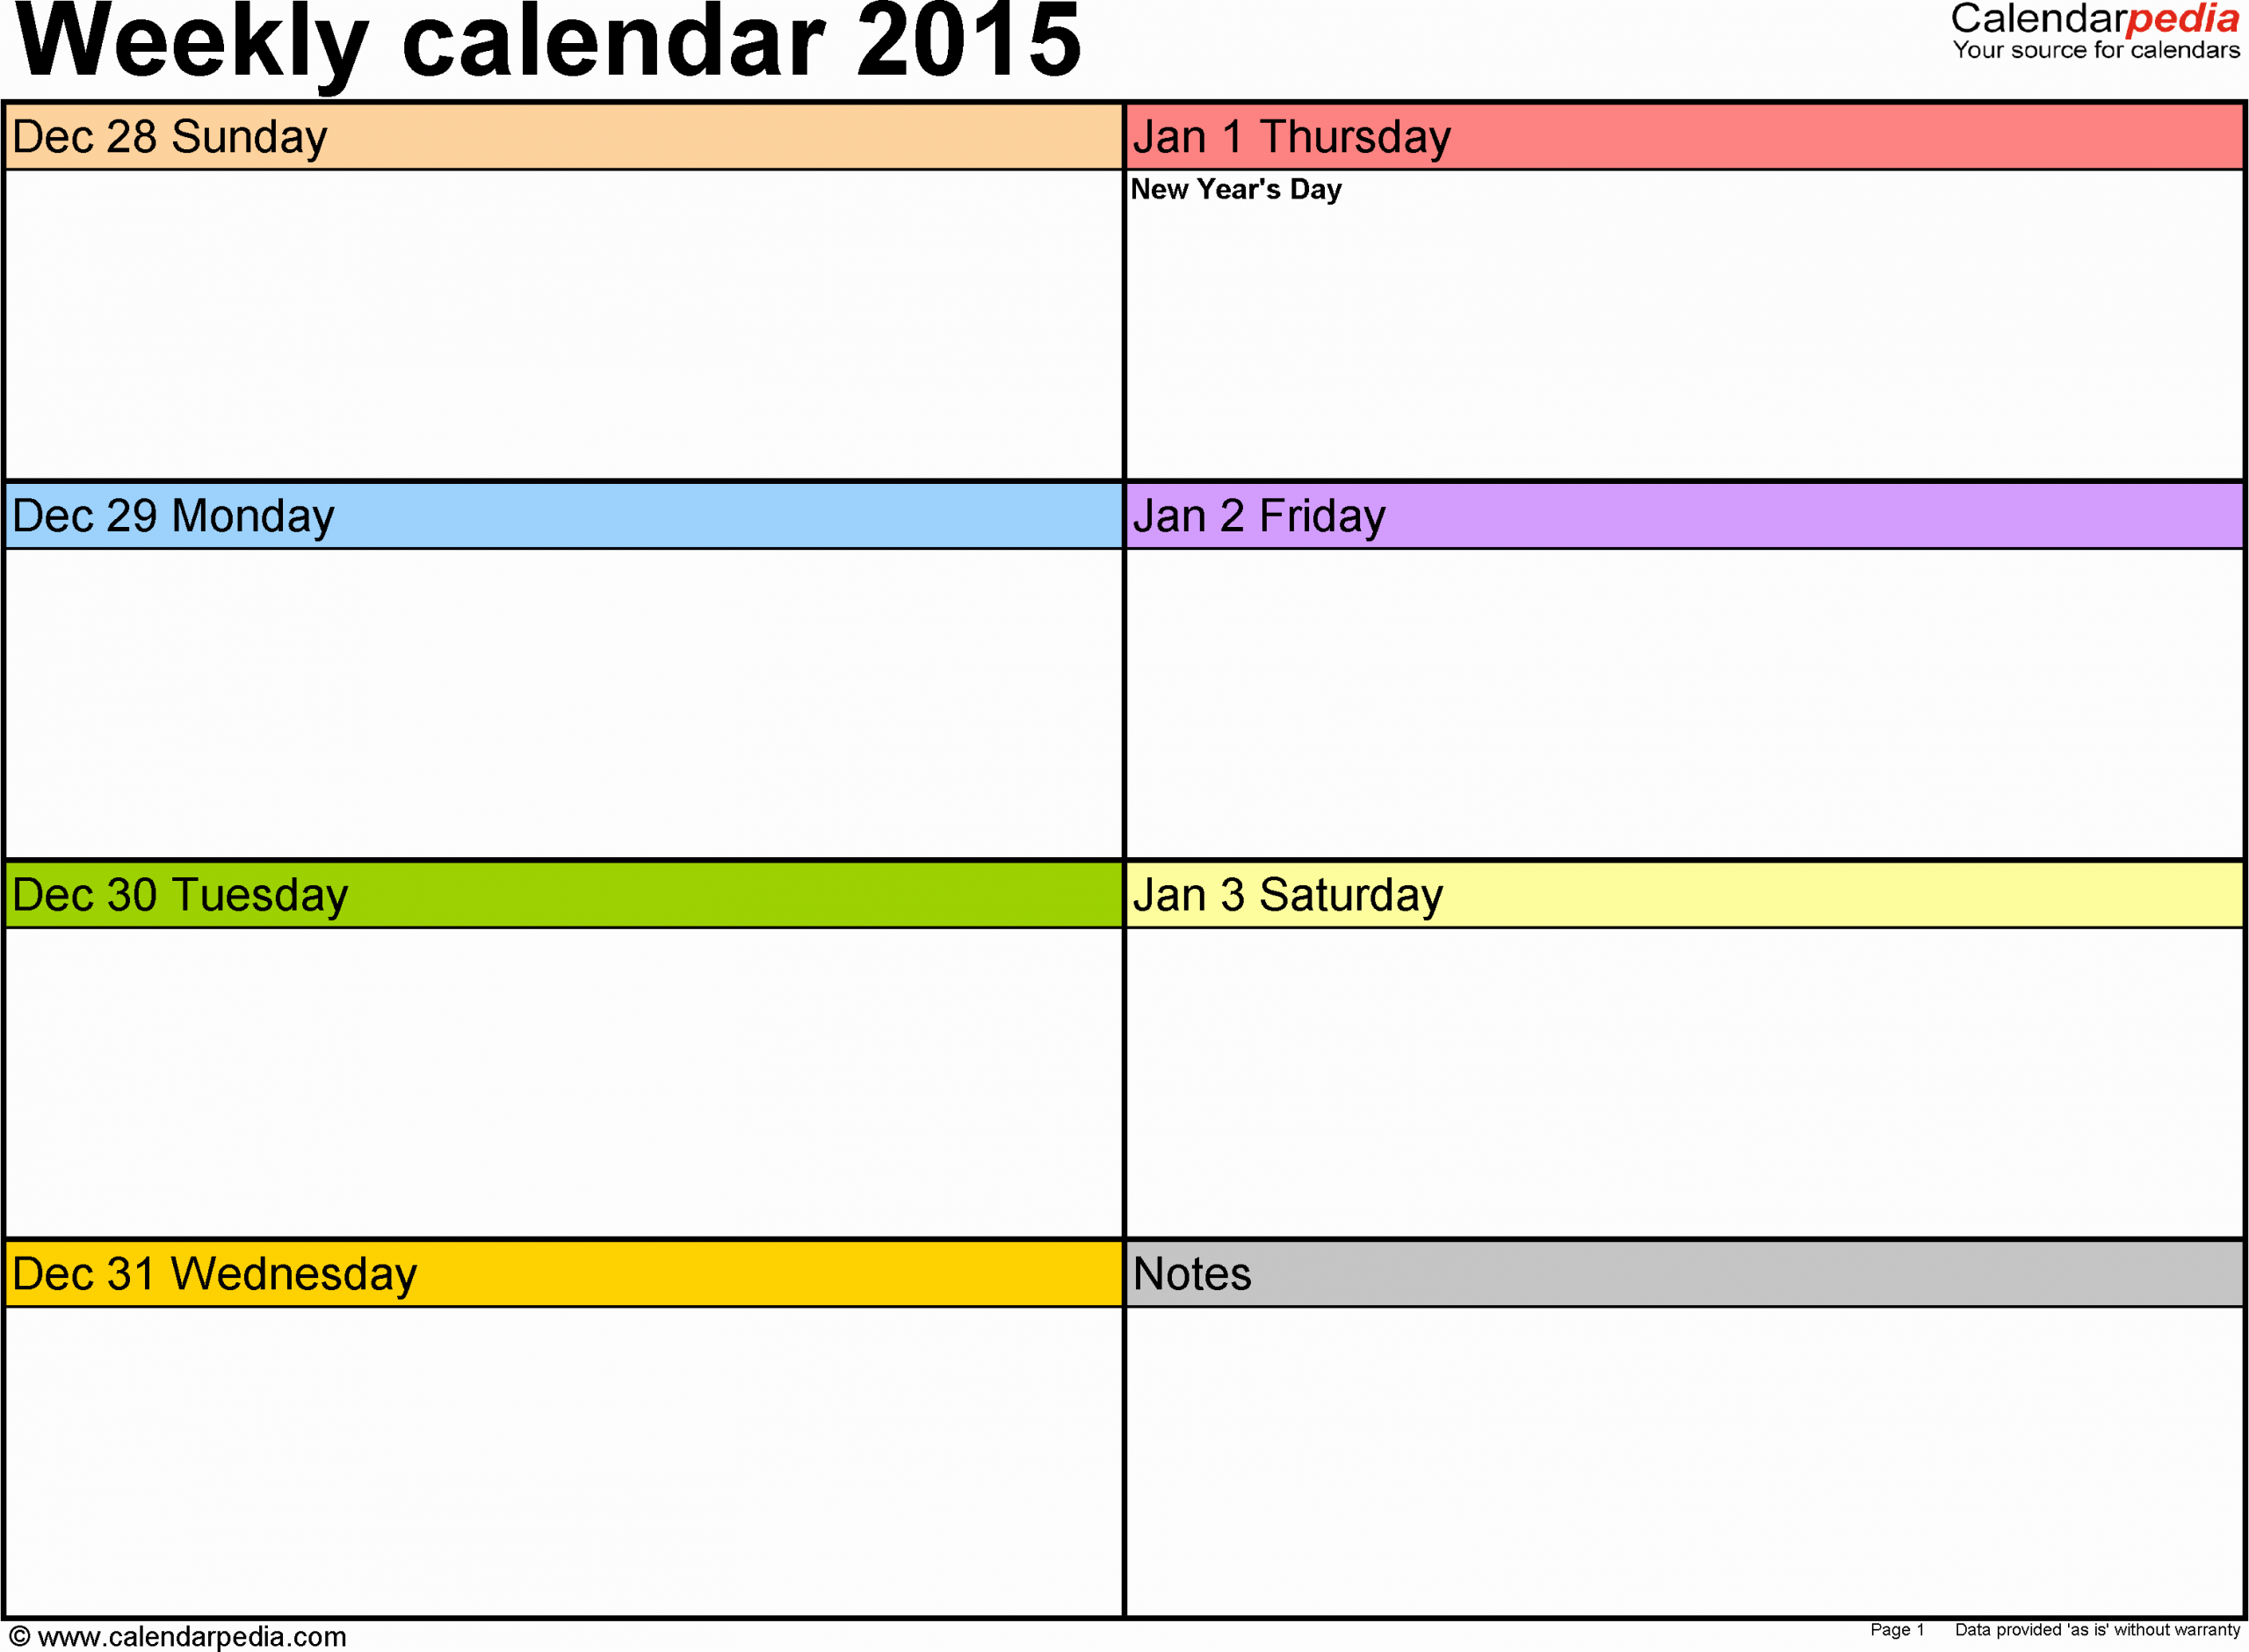 Week Schedule Template Excel New Weekly Calendar 2015 for Excel 5 Free Printable Templates